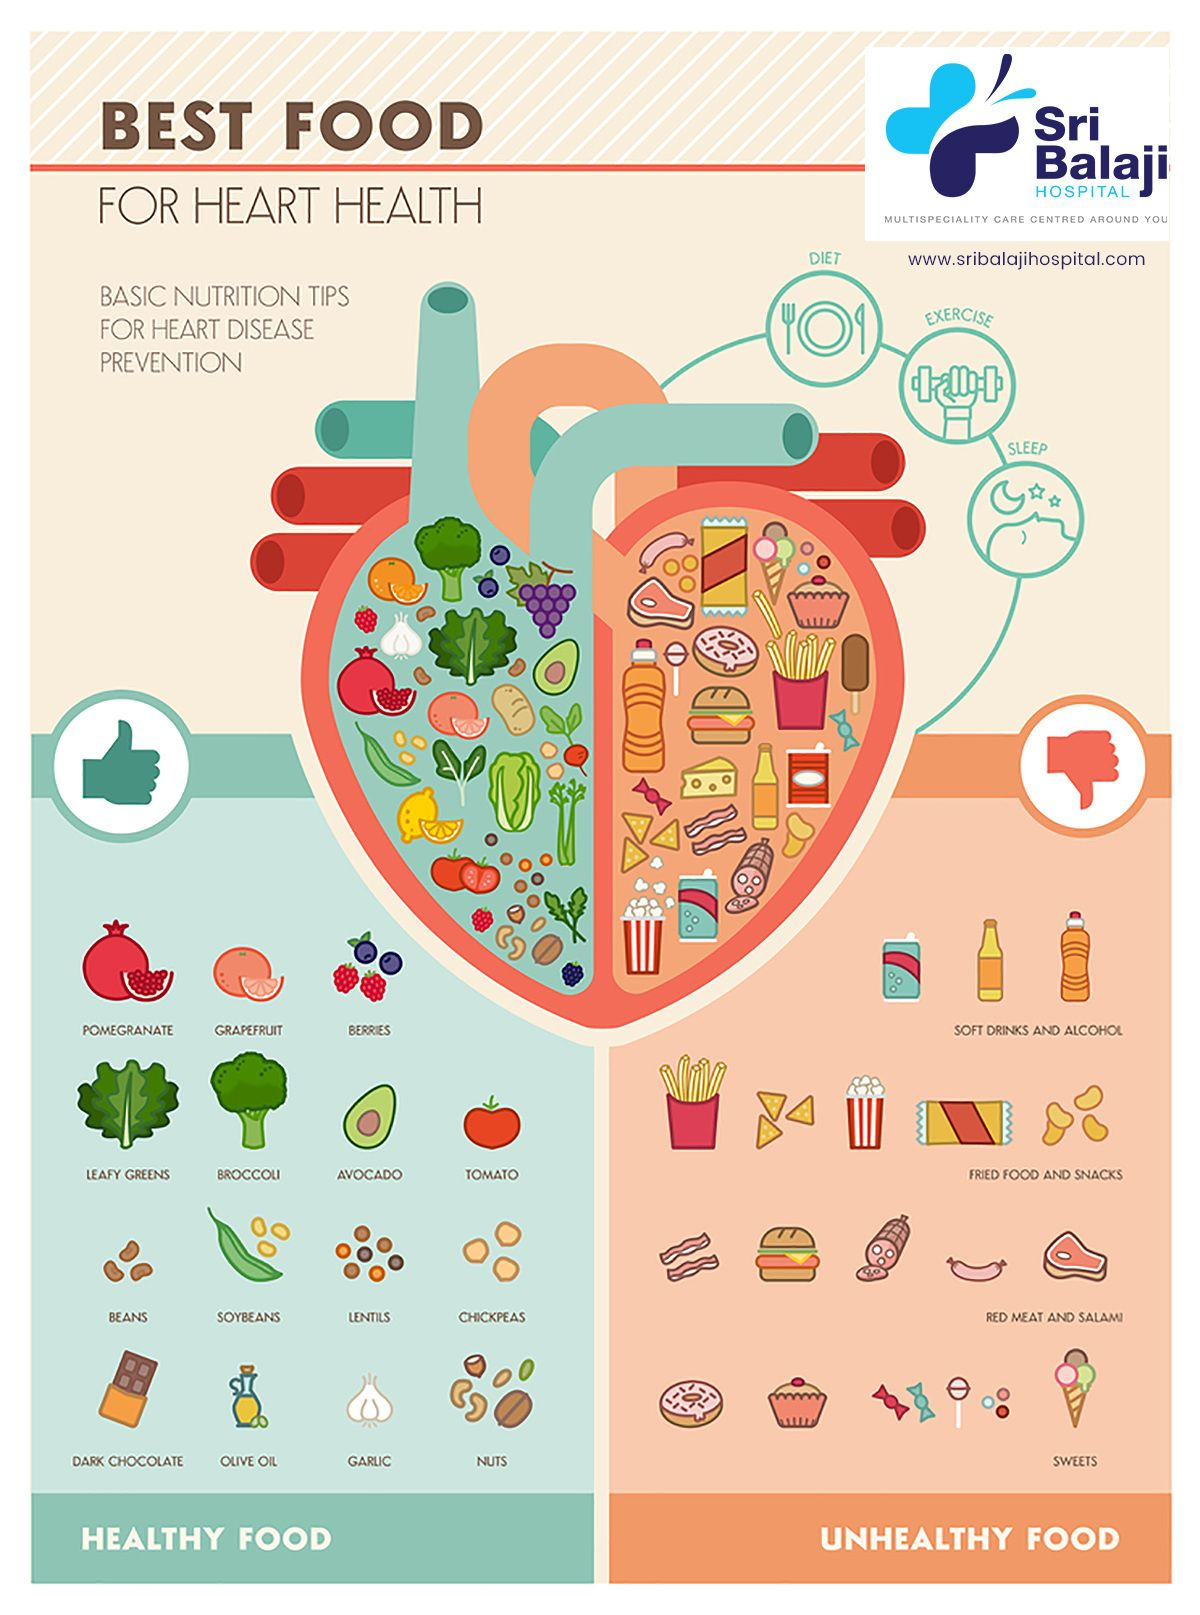 Healthy And Non Healty Food Best Nutrition For Health Heart Infographic Foods For Heart Health Heart Disease Prevention